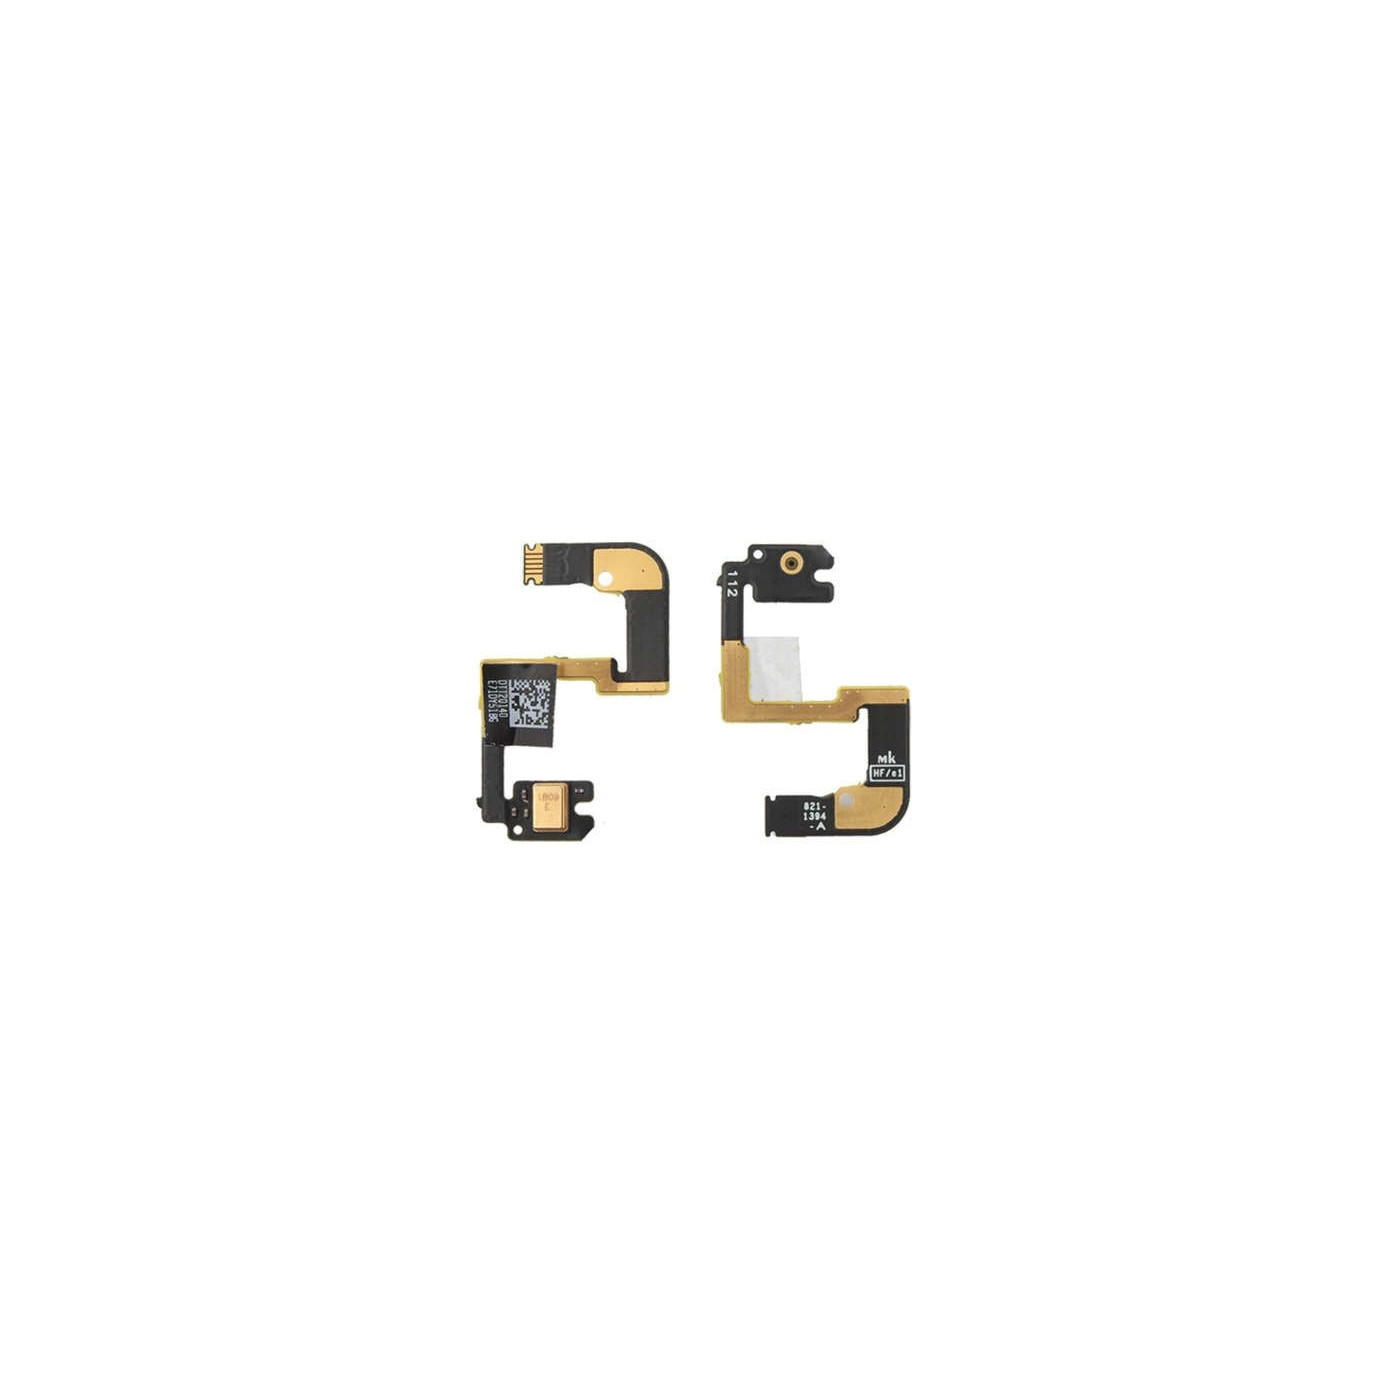 Microfono per apple ipad 3 versione wifi cellular flat flex cable ricambio